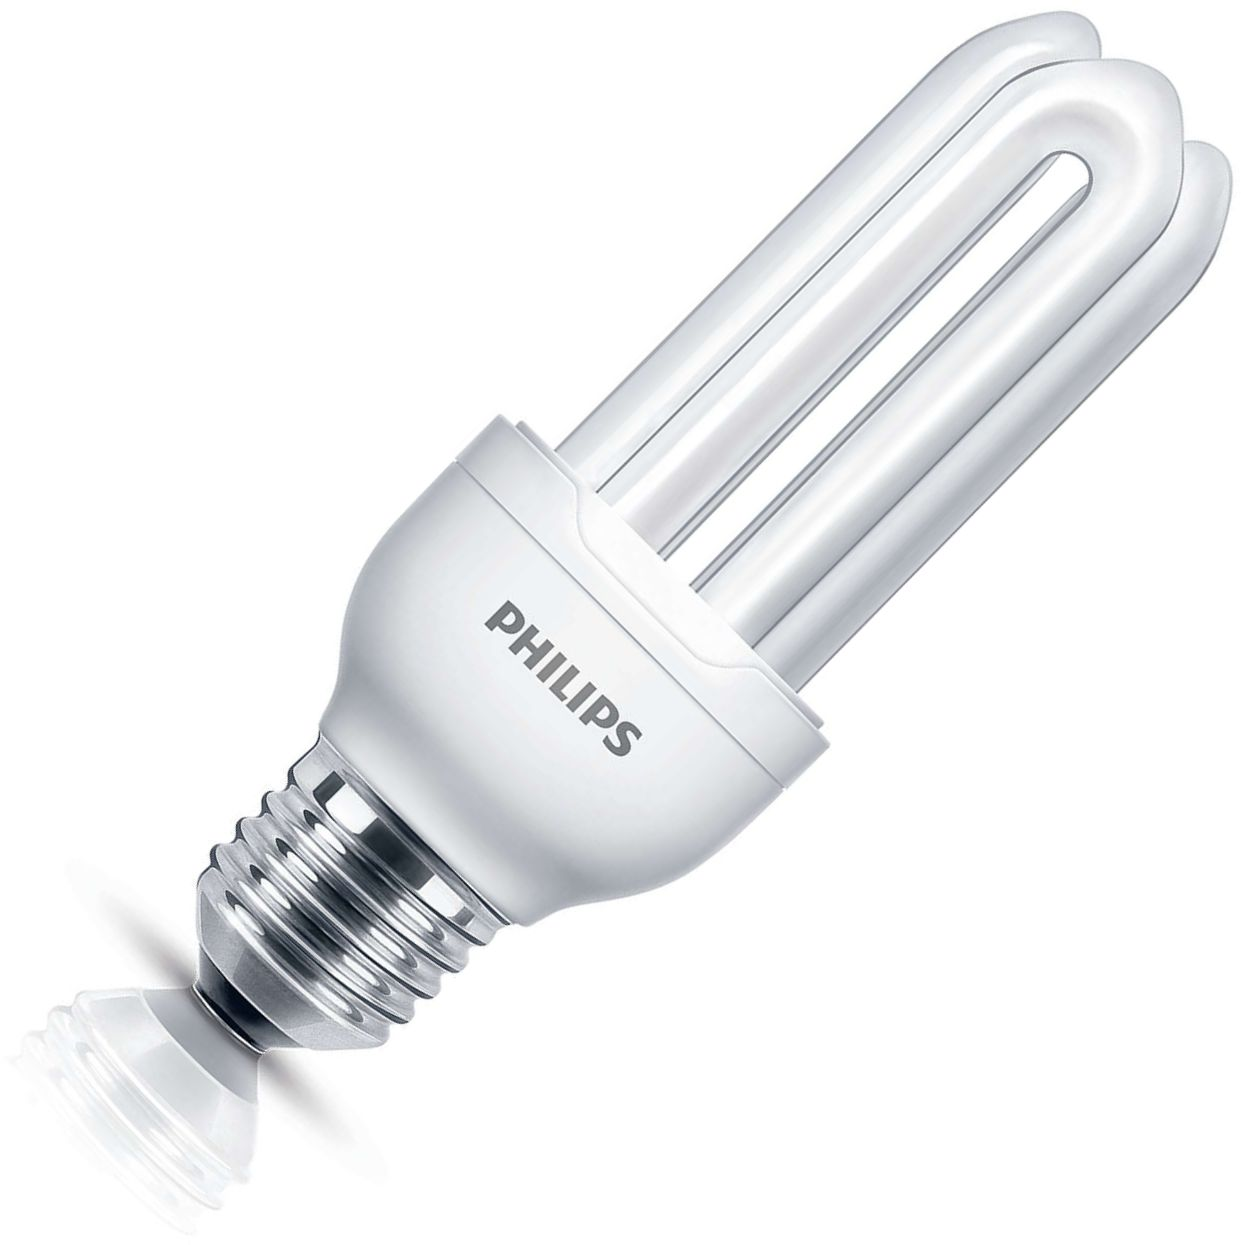 Philips genie spaarlamp buis 23W (vervangt 125W) grote fitting E27